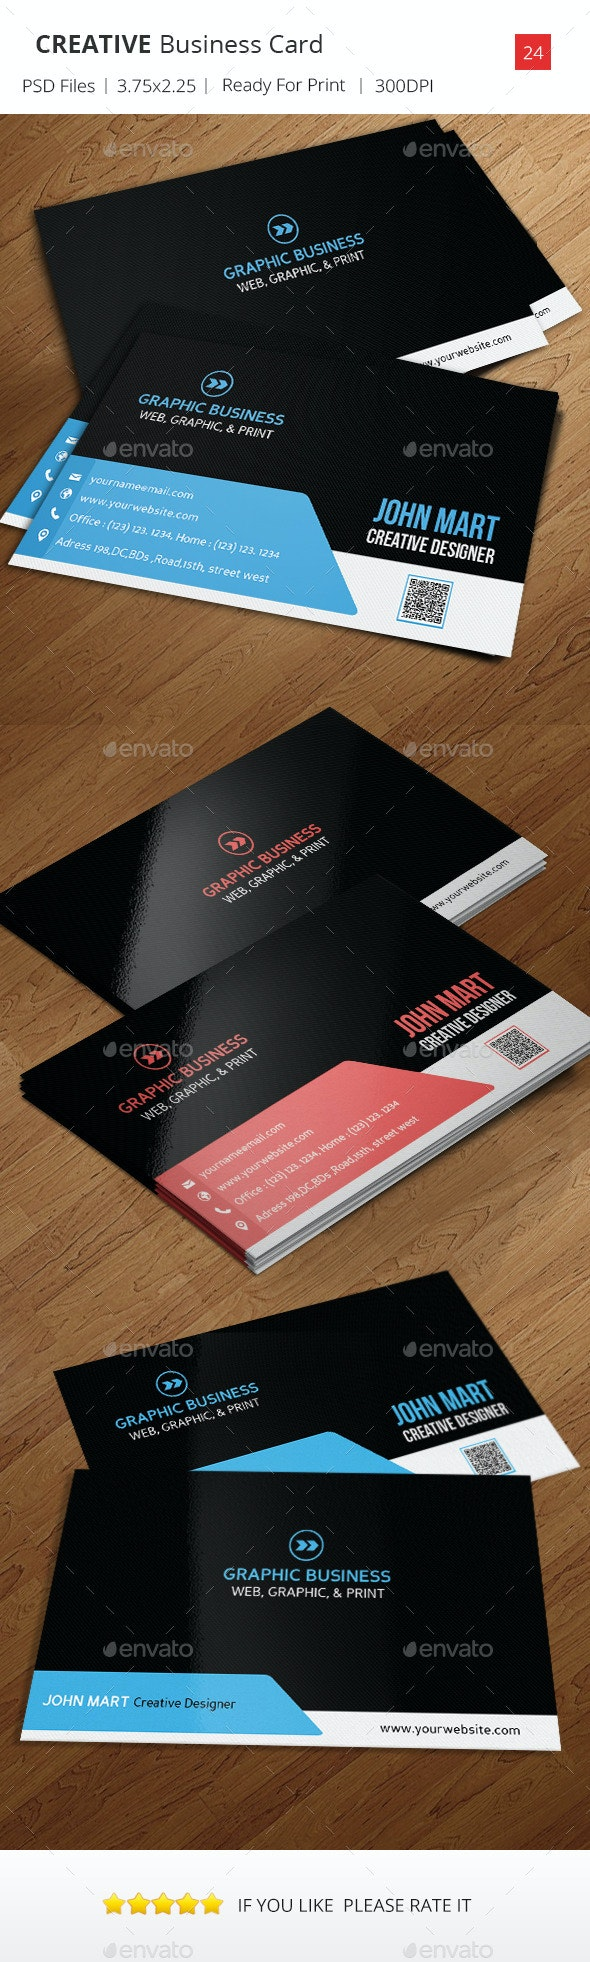 Creative Business Card v.24 - Creative Business Cards